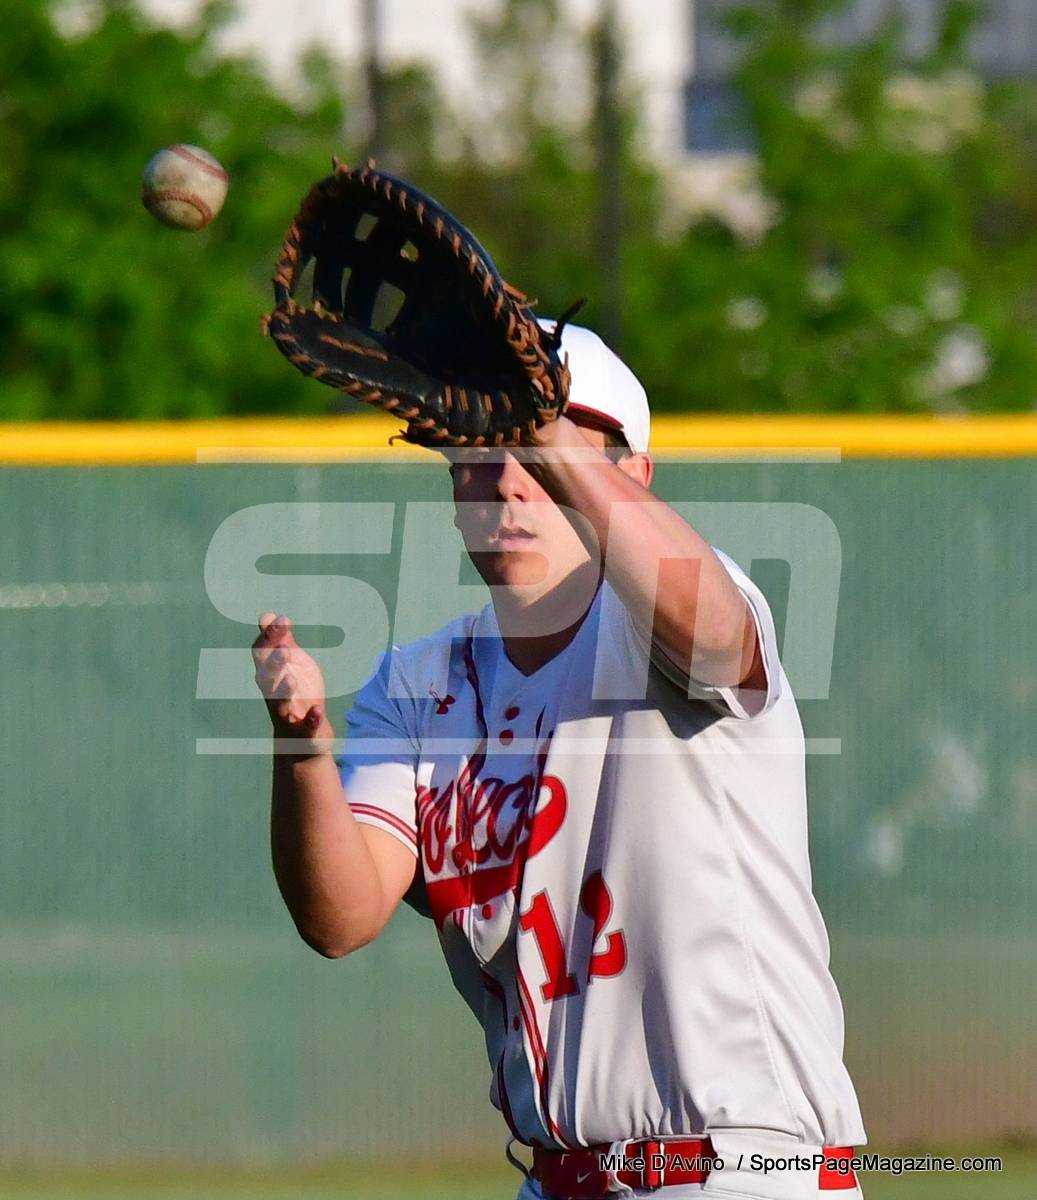 05-22 Gallery CIAC BASE; Wolcott vs. ST. Paul - NVL T. SF's - Photo # 391